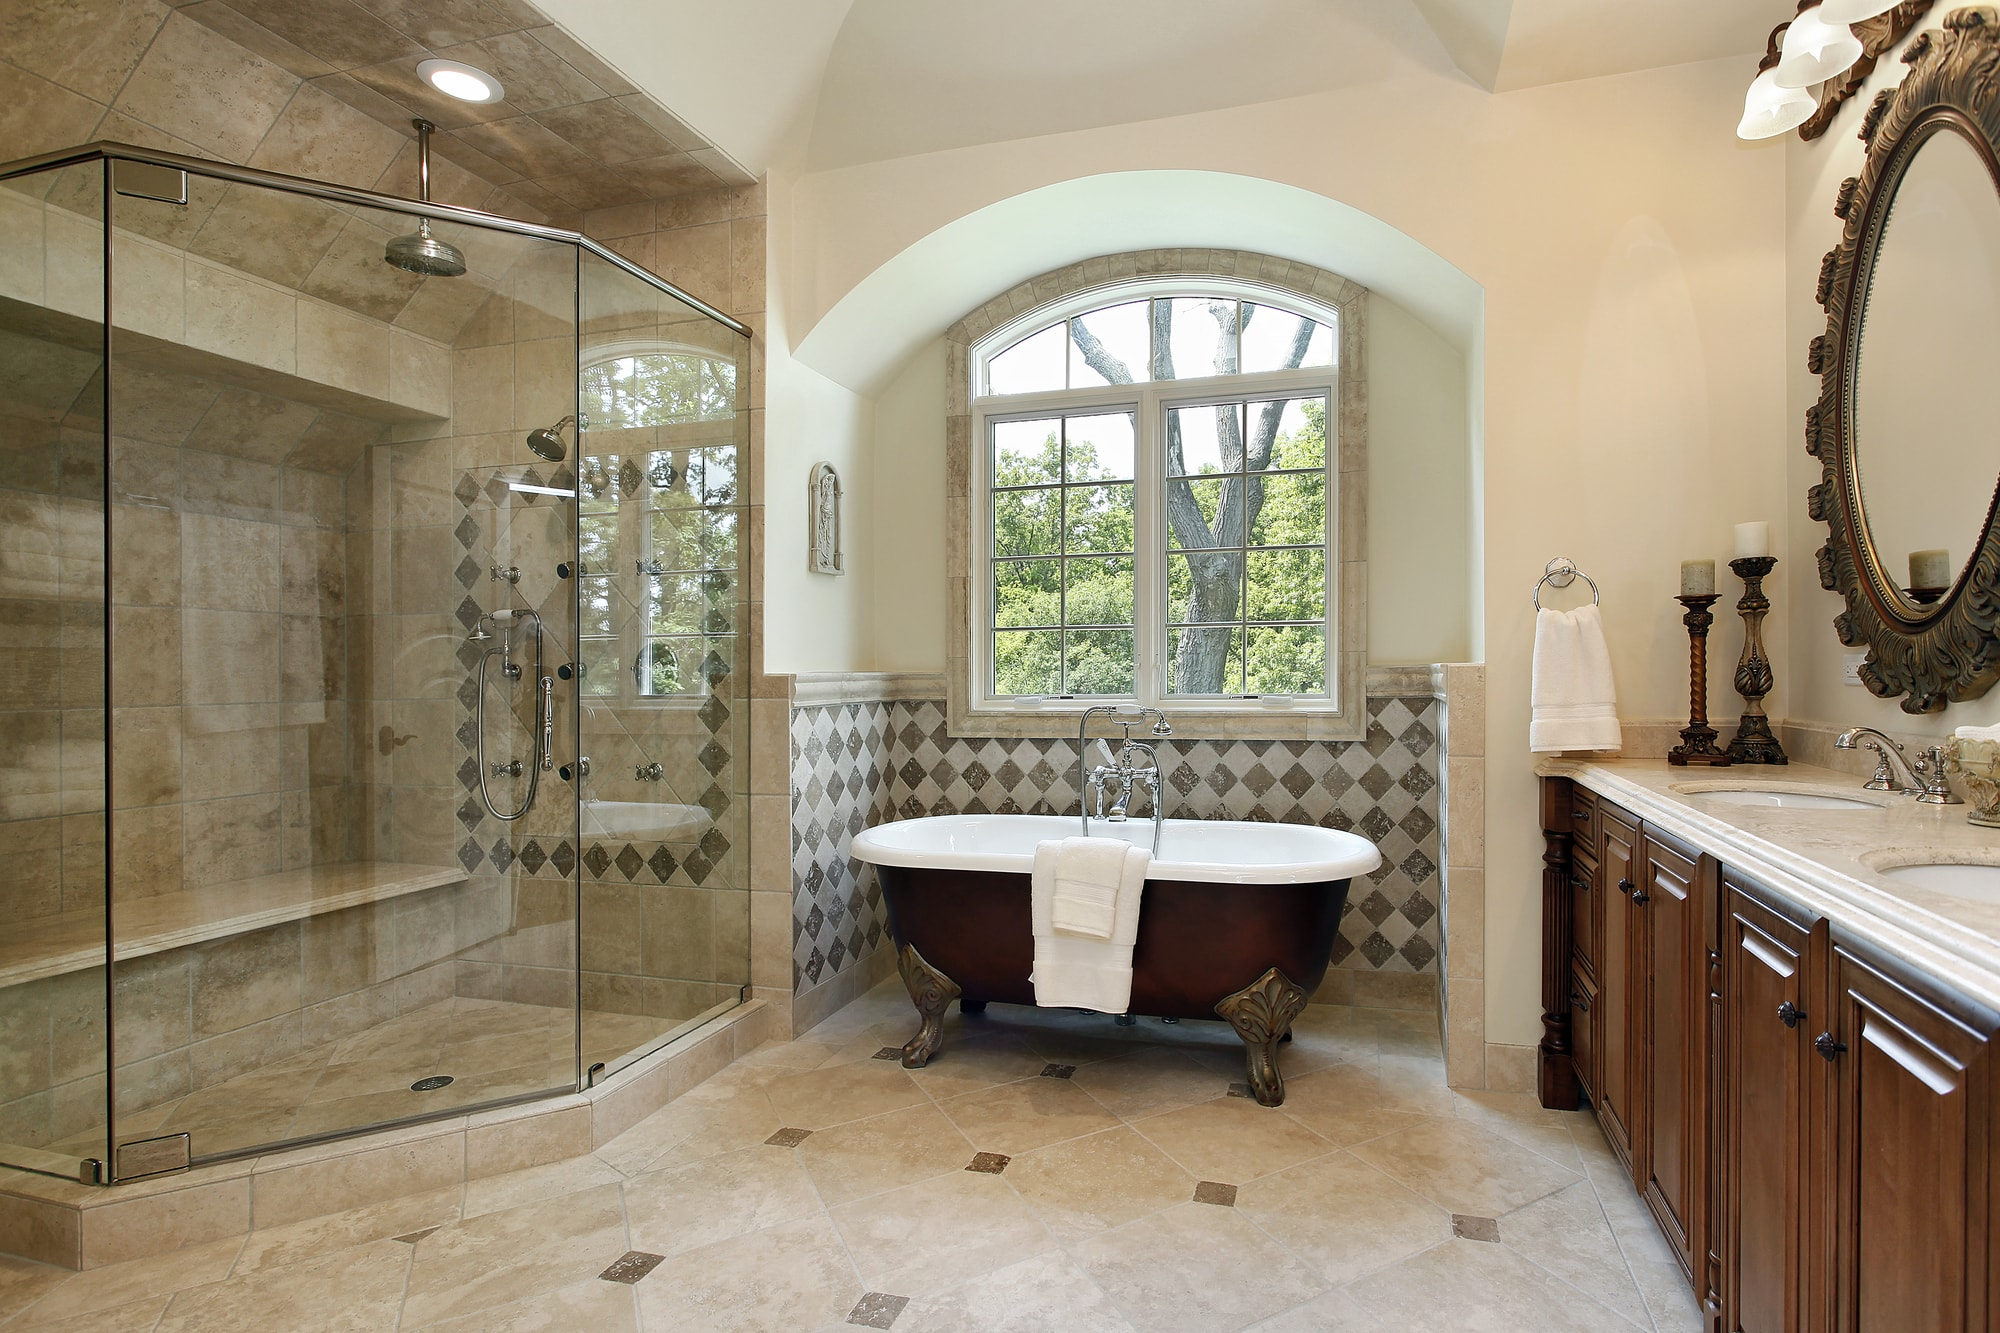 Custom Bathroom Remodel with Glass Shower and Clawfoot tub